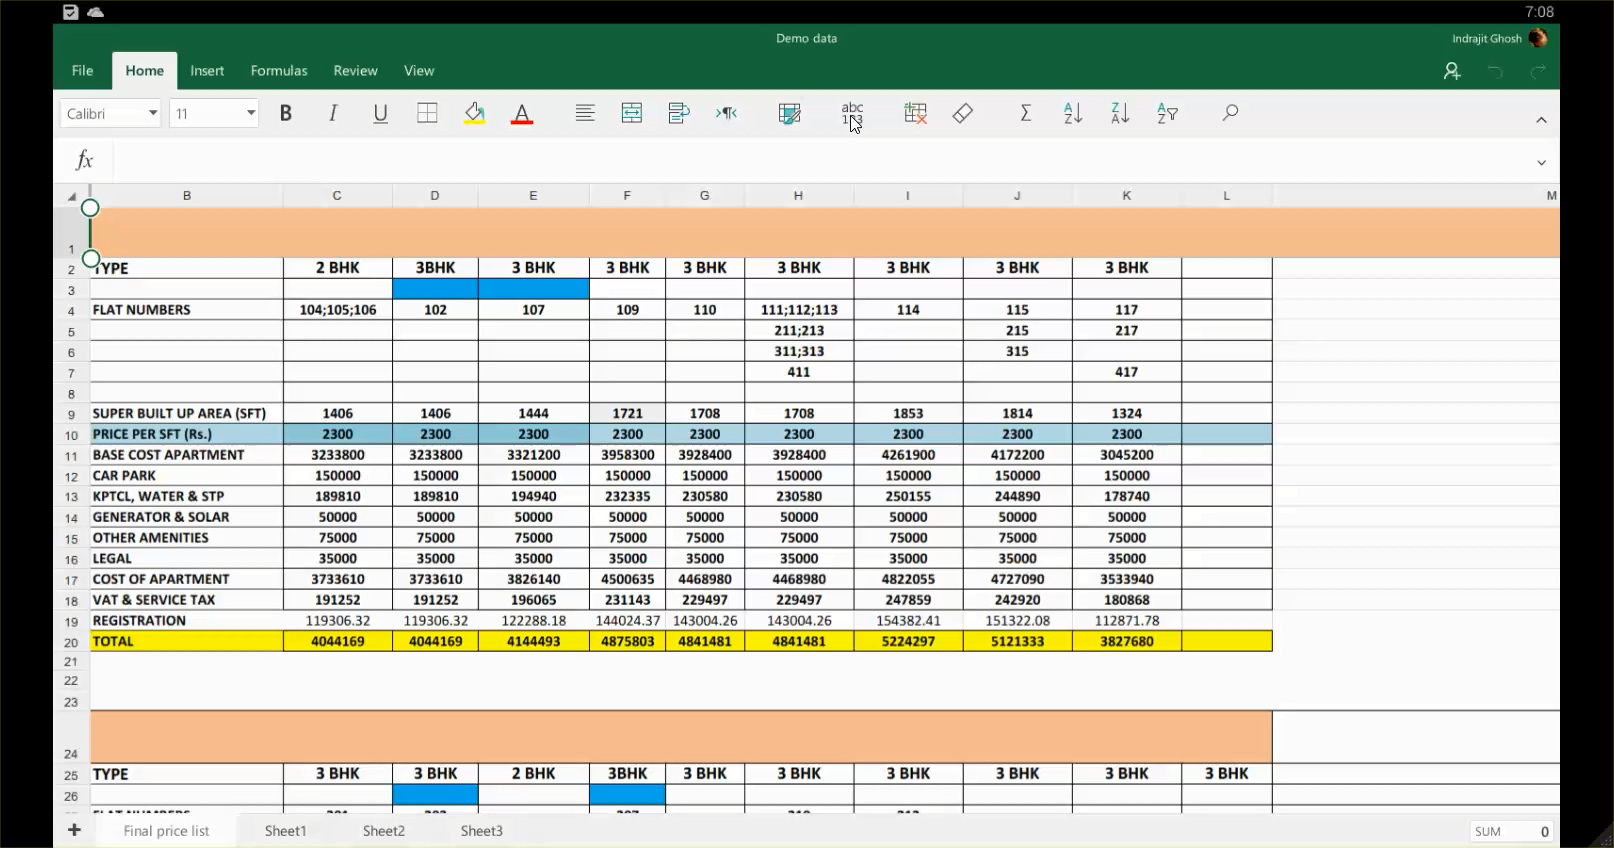 How to migrate from Google Sheets to Microsoft Excel in Android